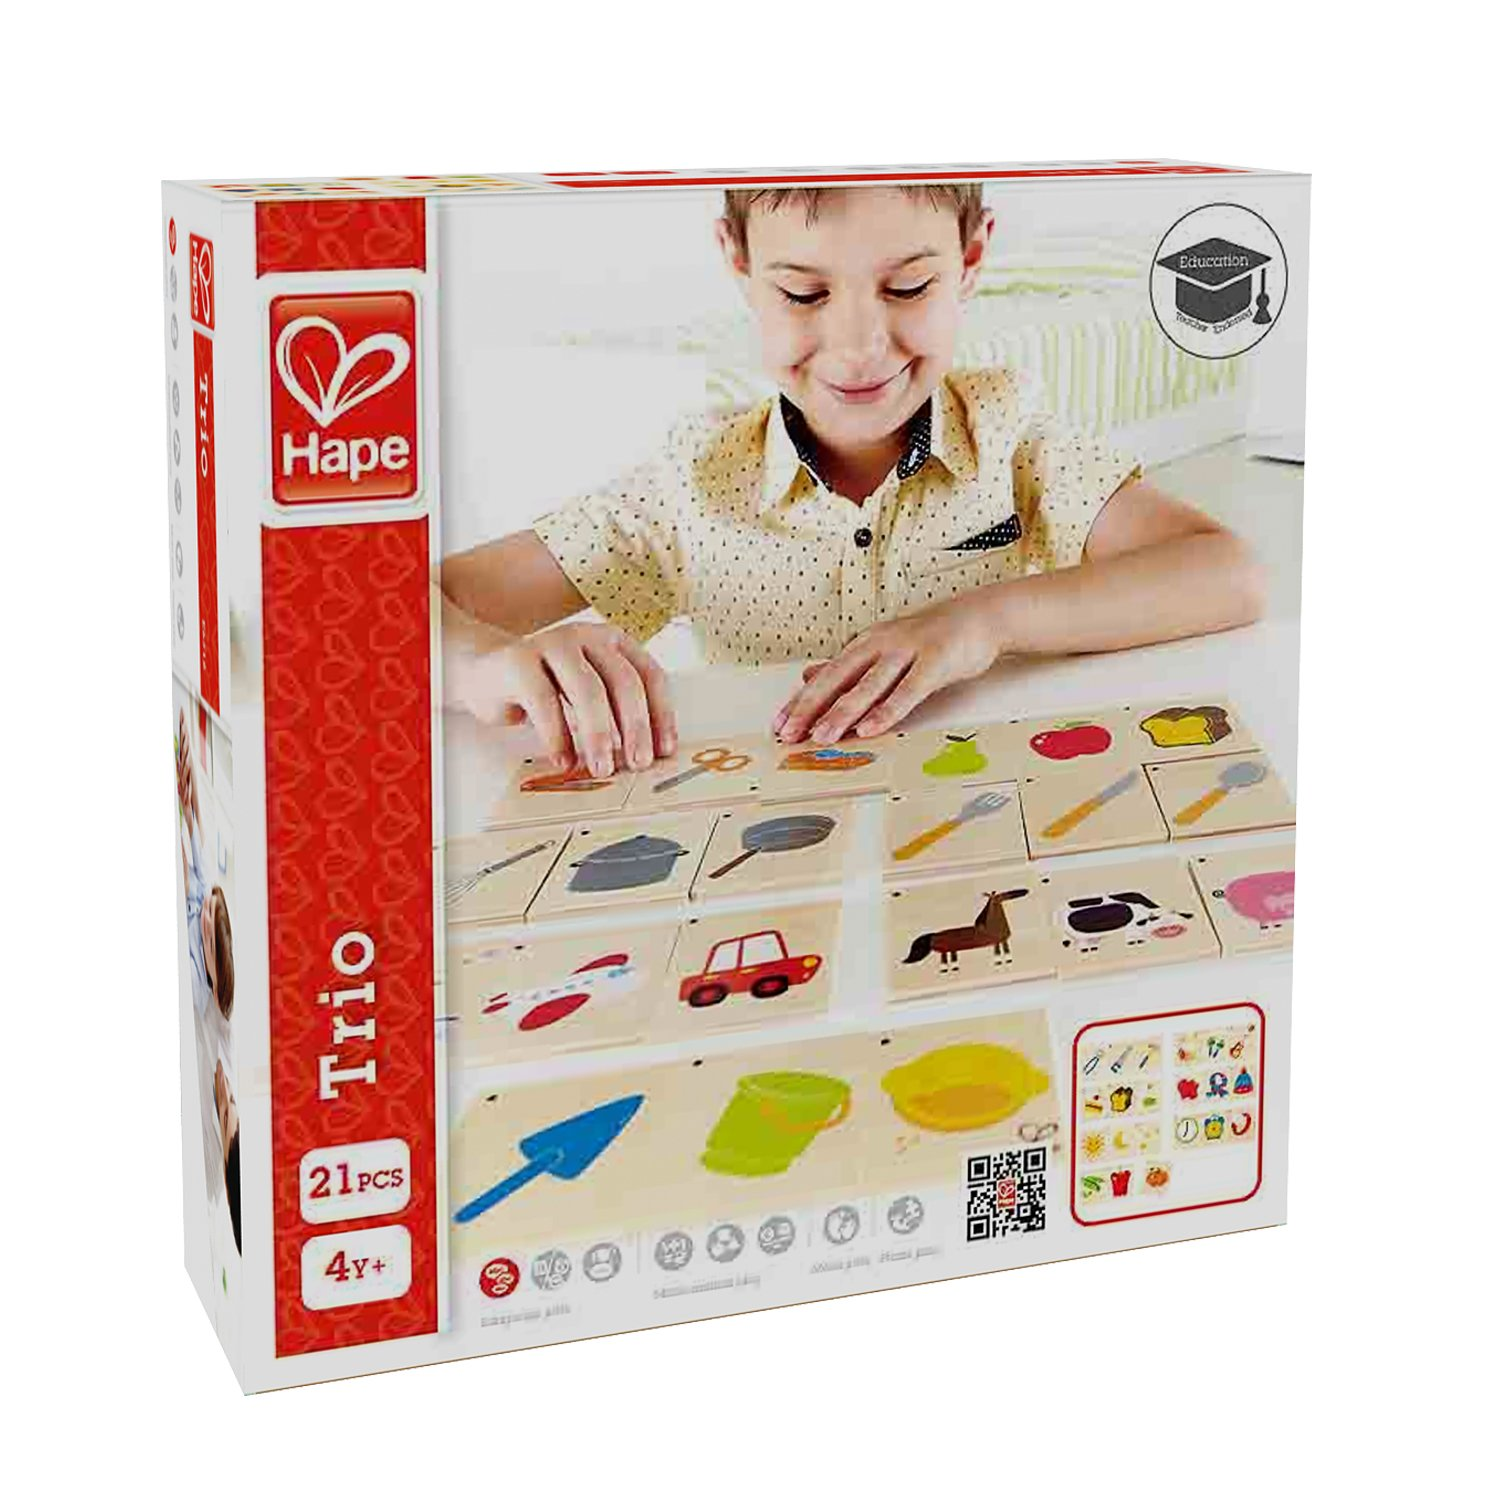 Hape HAP-E6316 Home Education Trio Game